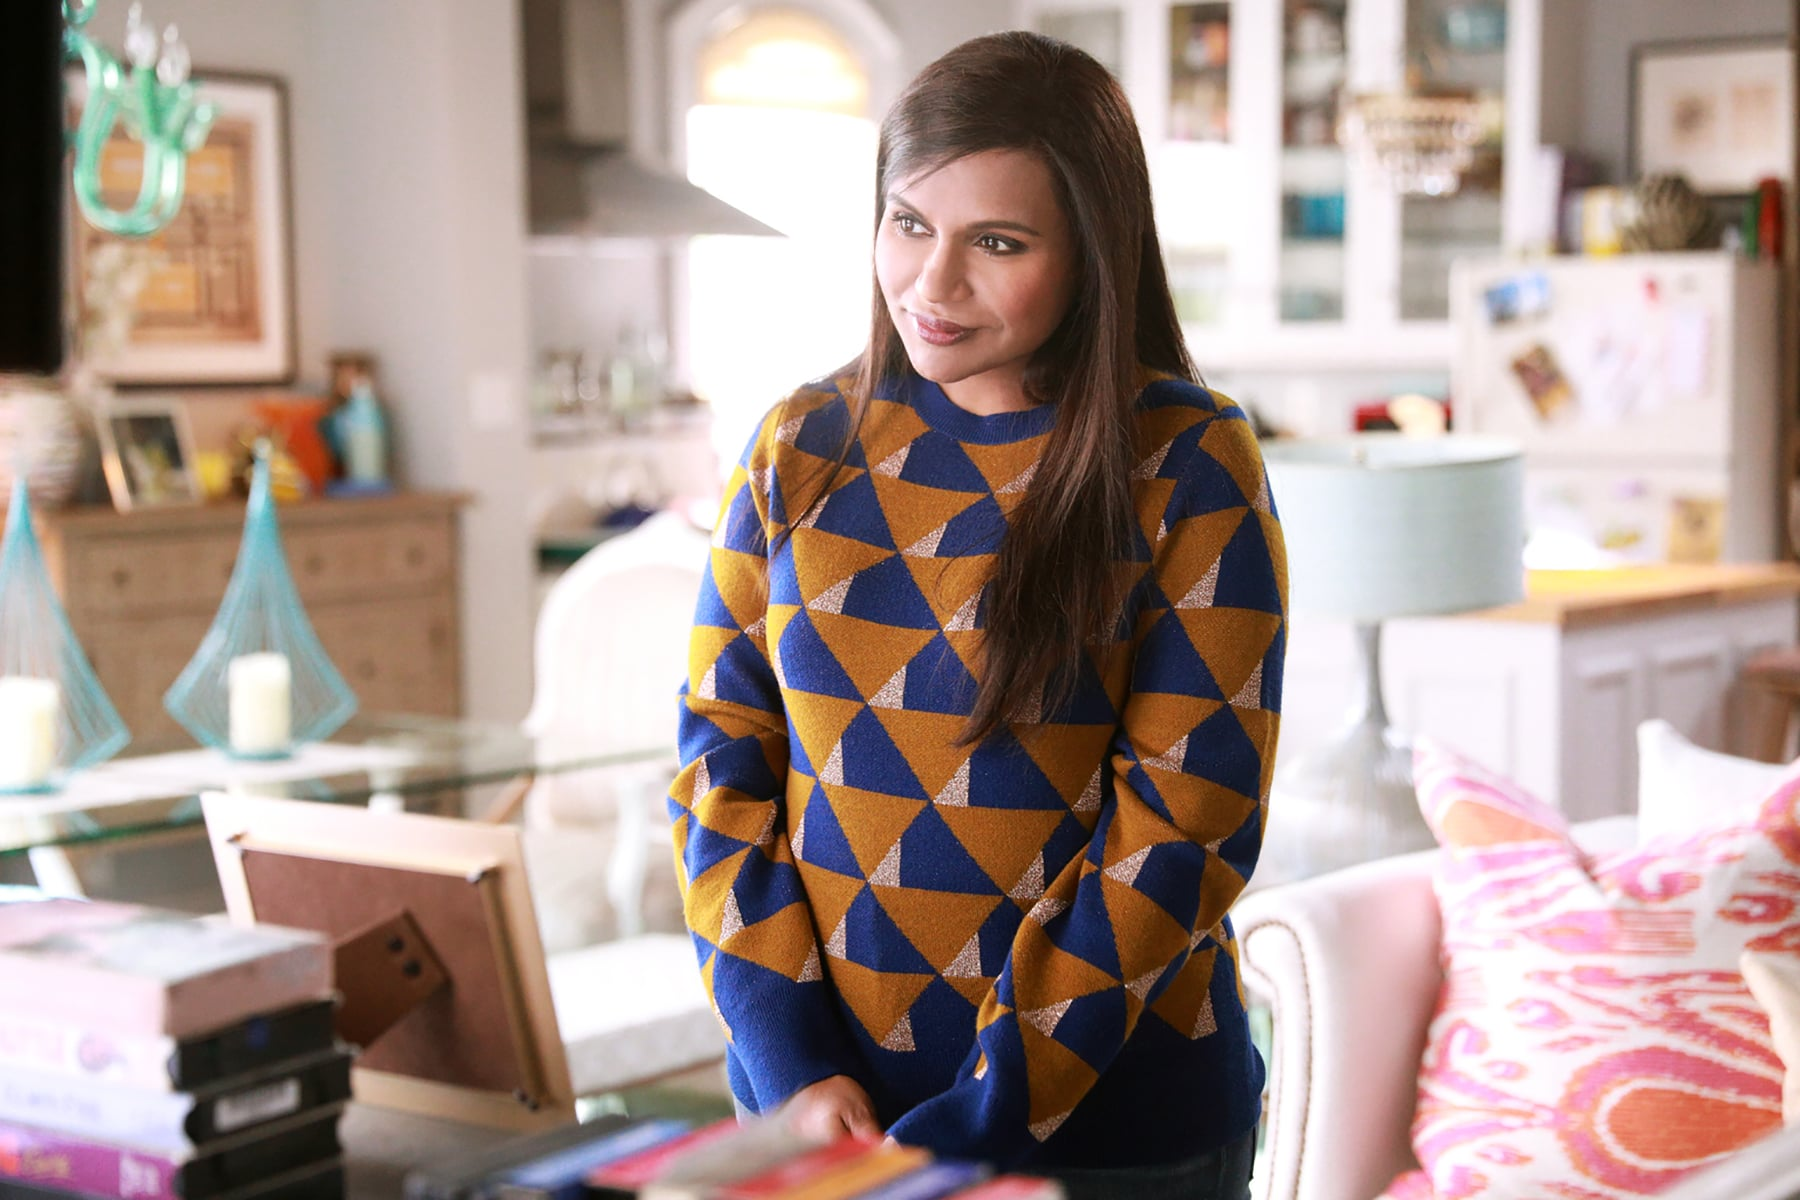 THE MINDY PROJECT, Mindy Kaling in 'Is That All There Is?' (Season 6, Episode 1, aired September 12, 2017). ph: Jordin Althaus/Hulu/courtesy Everett Collection